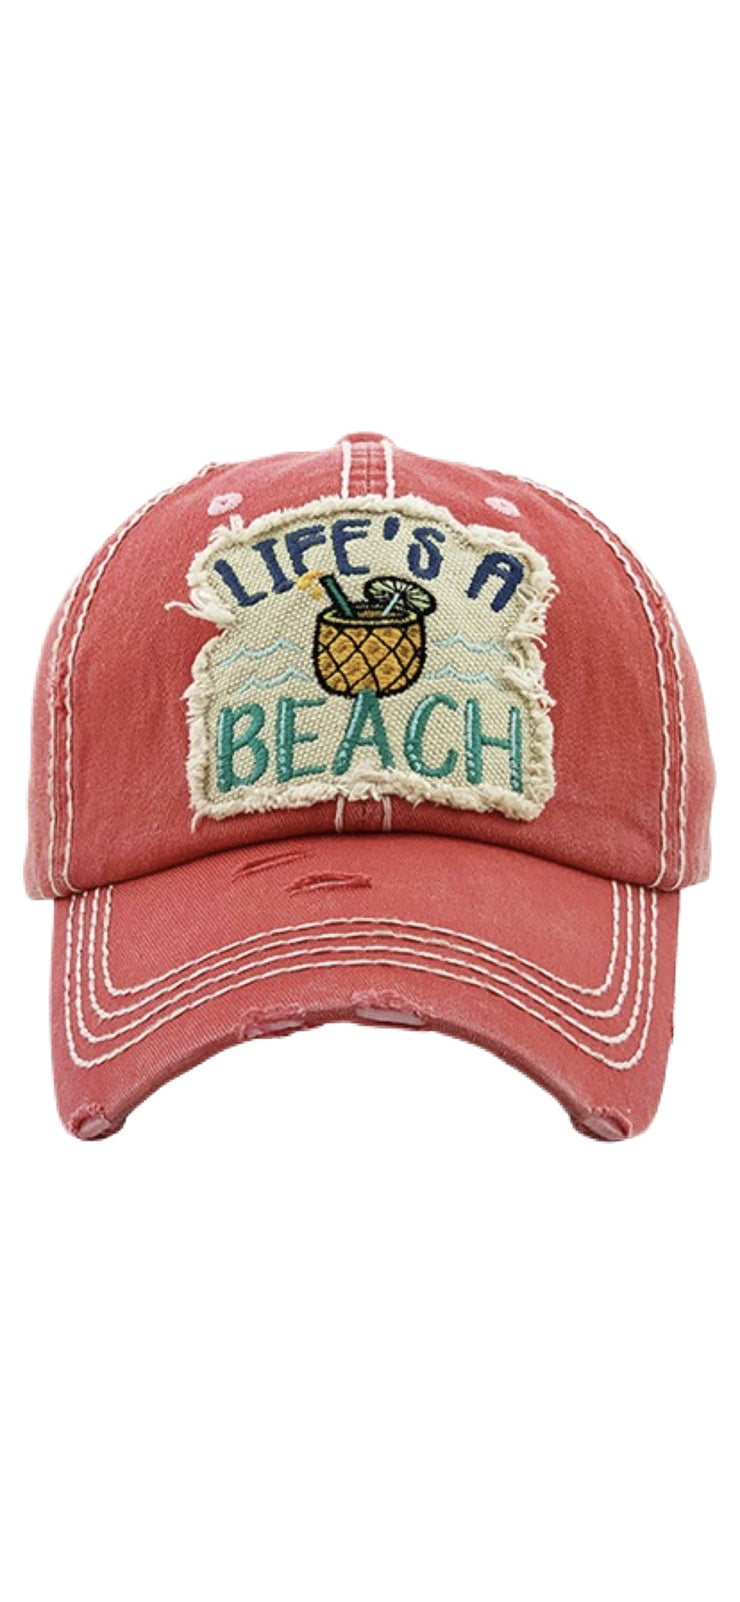 Life's A Beach Ball Cap - [product_style] - Hats - WILLOWTREE MARKET